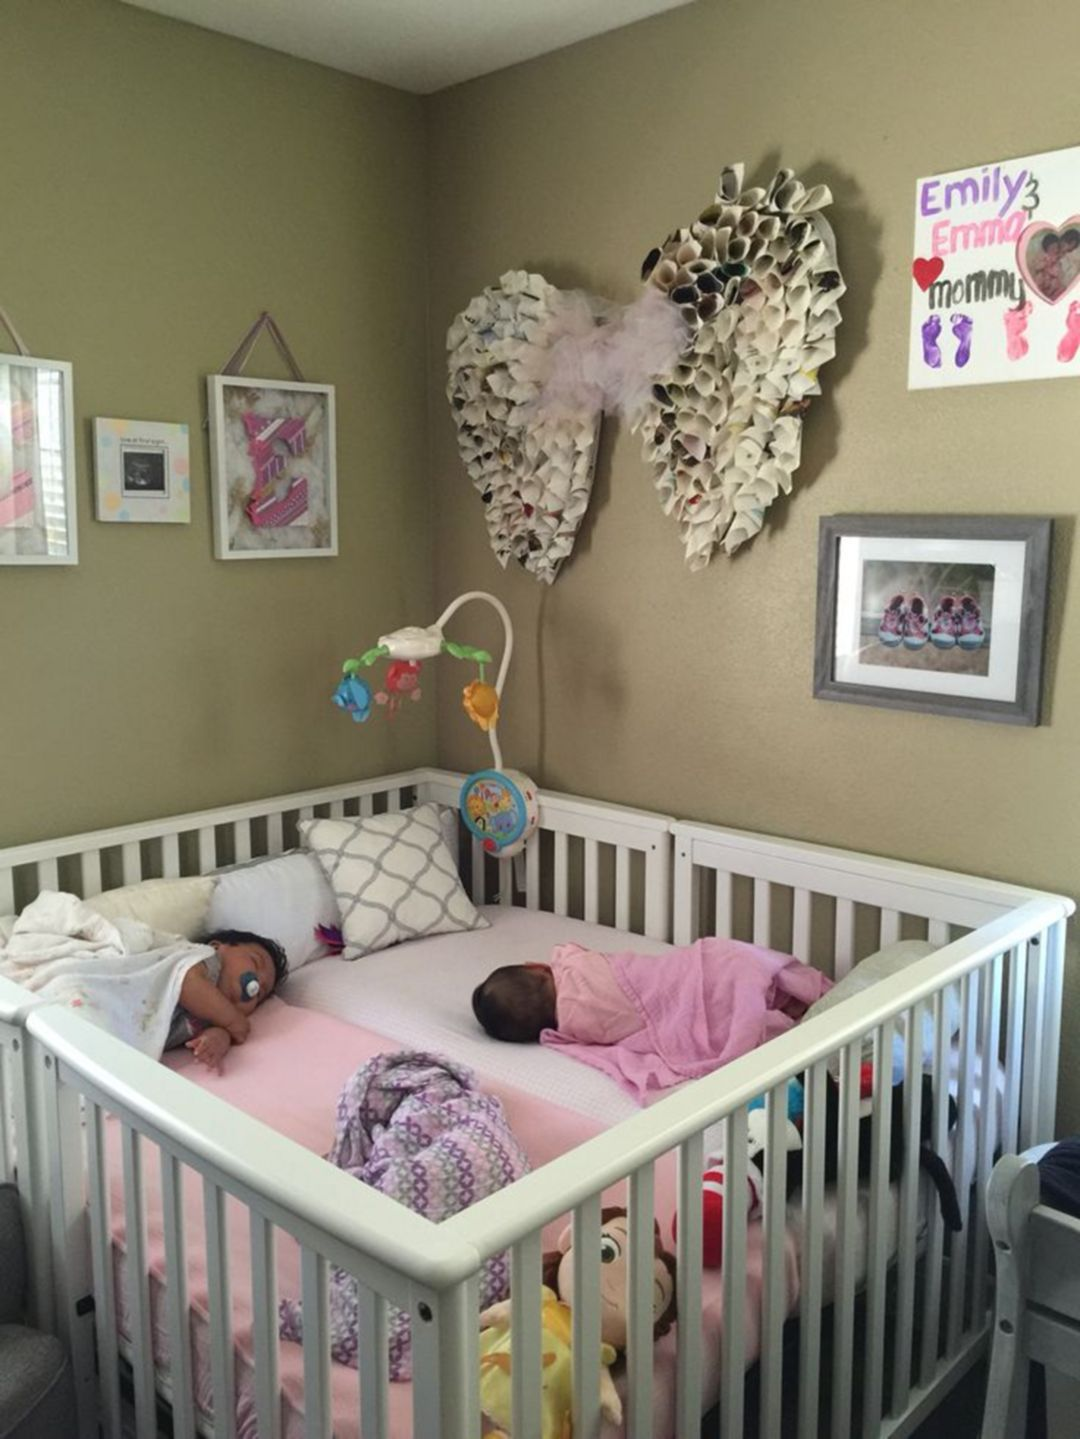 15 Amazing And Safe Cribs For Babies Ideas For Your Inspiration